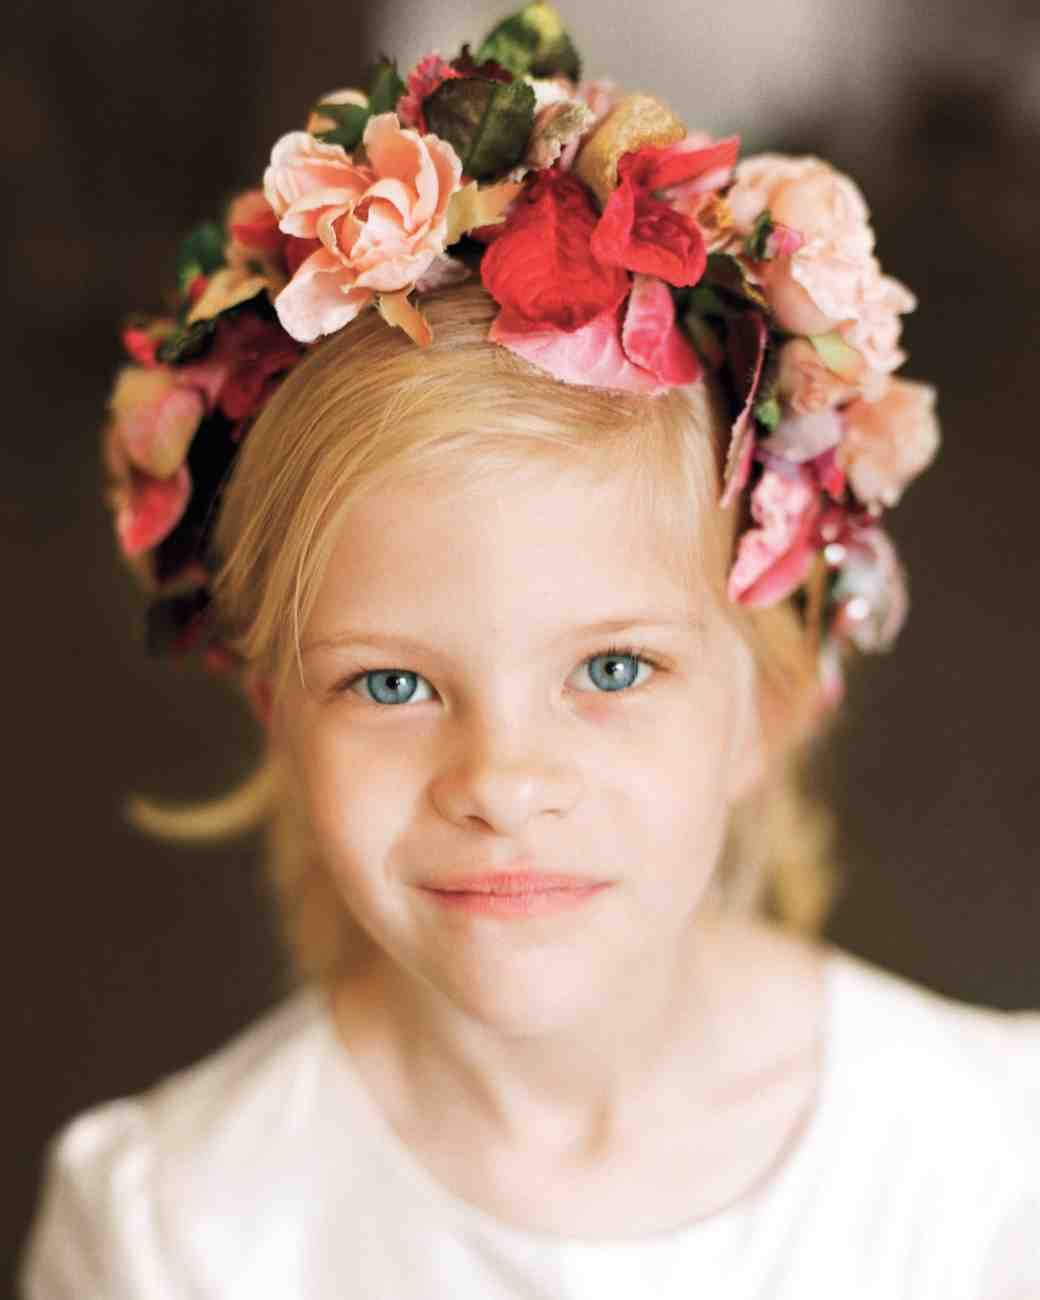 Fall Wedding Hairstyles With Flower Crown: 68 Flower Crown Ideas To Complete Your Wedding Hairstyle